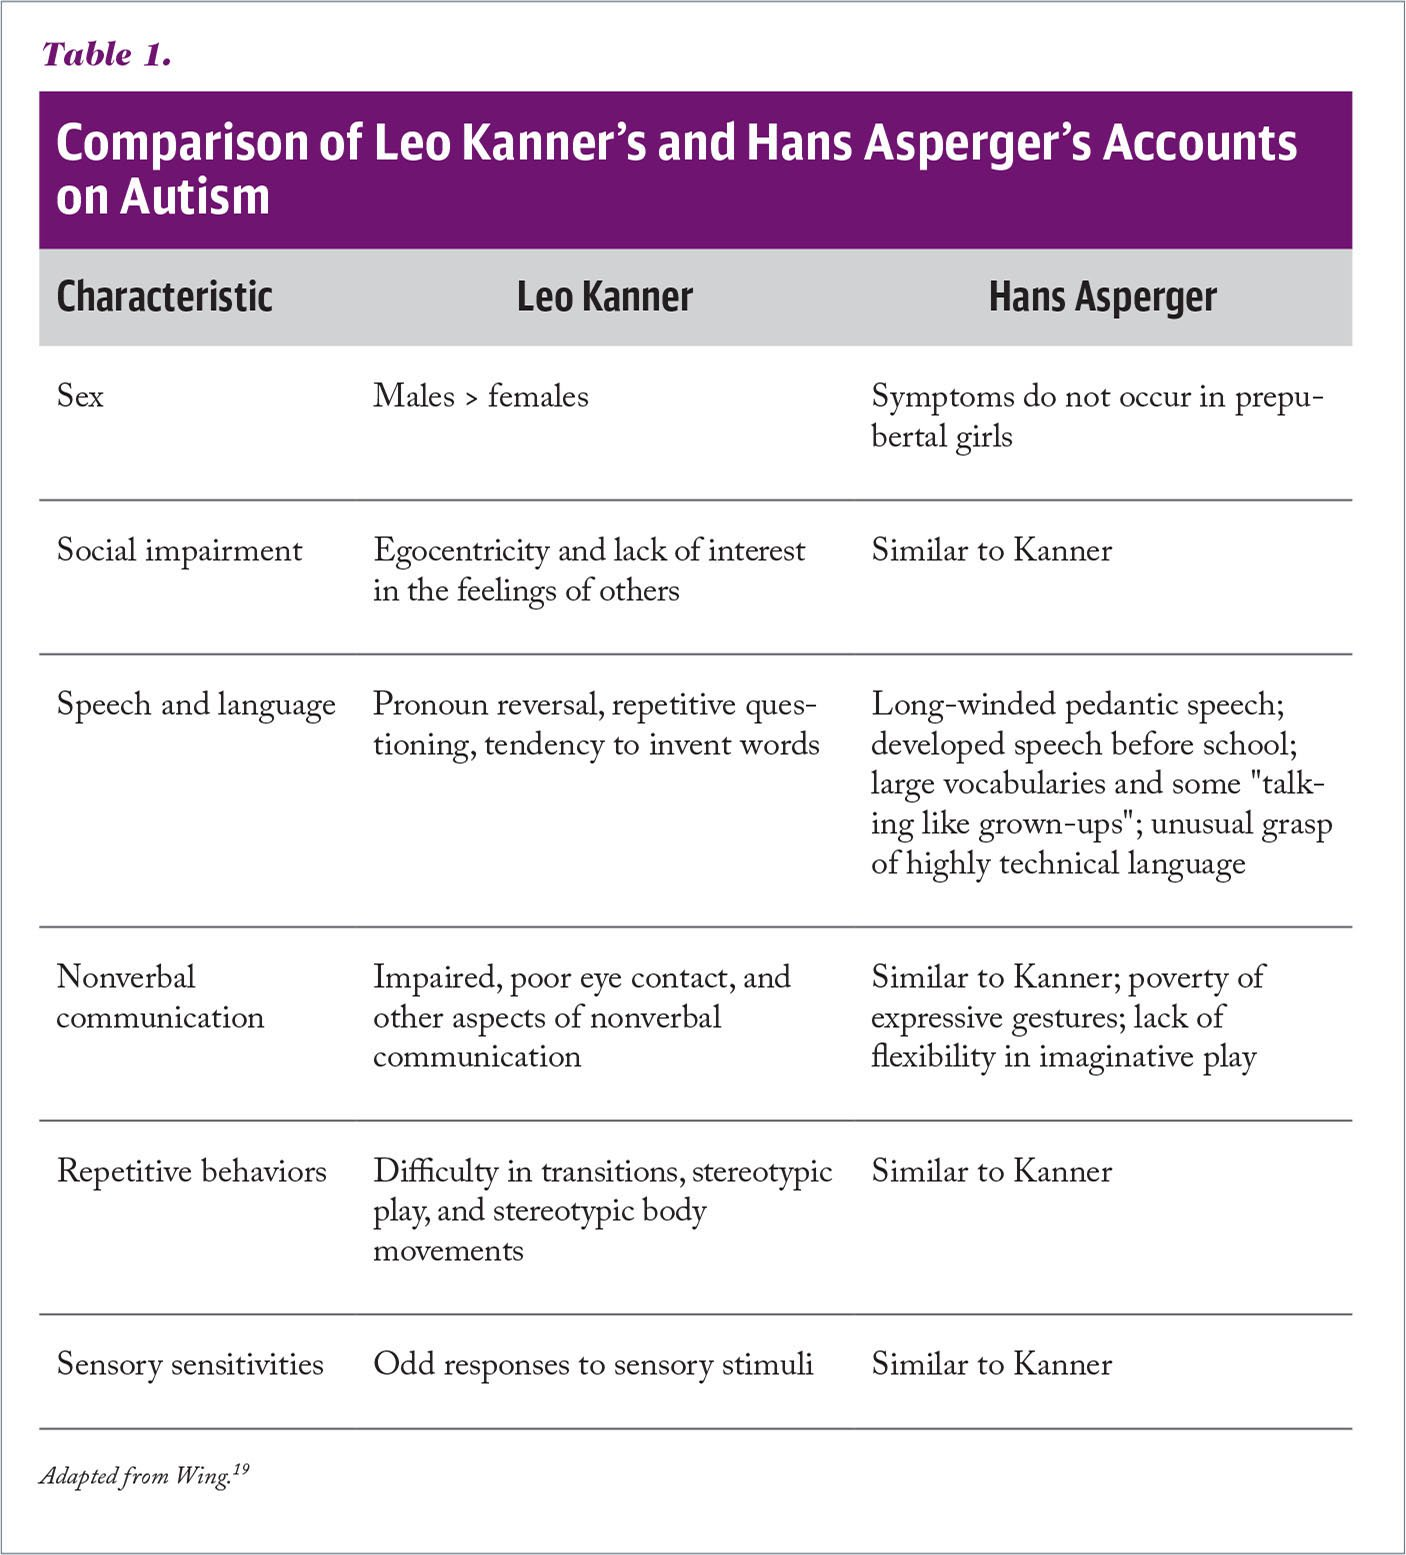 Comparison of Leo Kanner's and Hans Asperger's Accounts on Autism